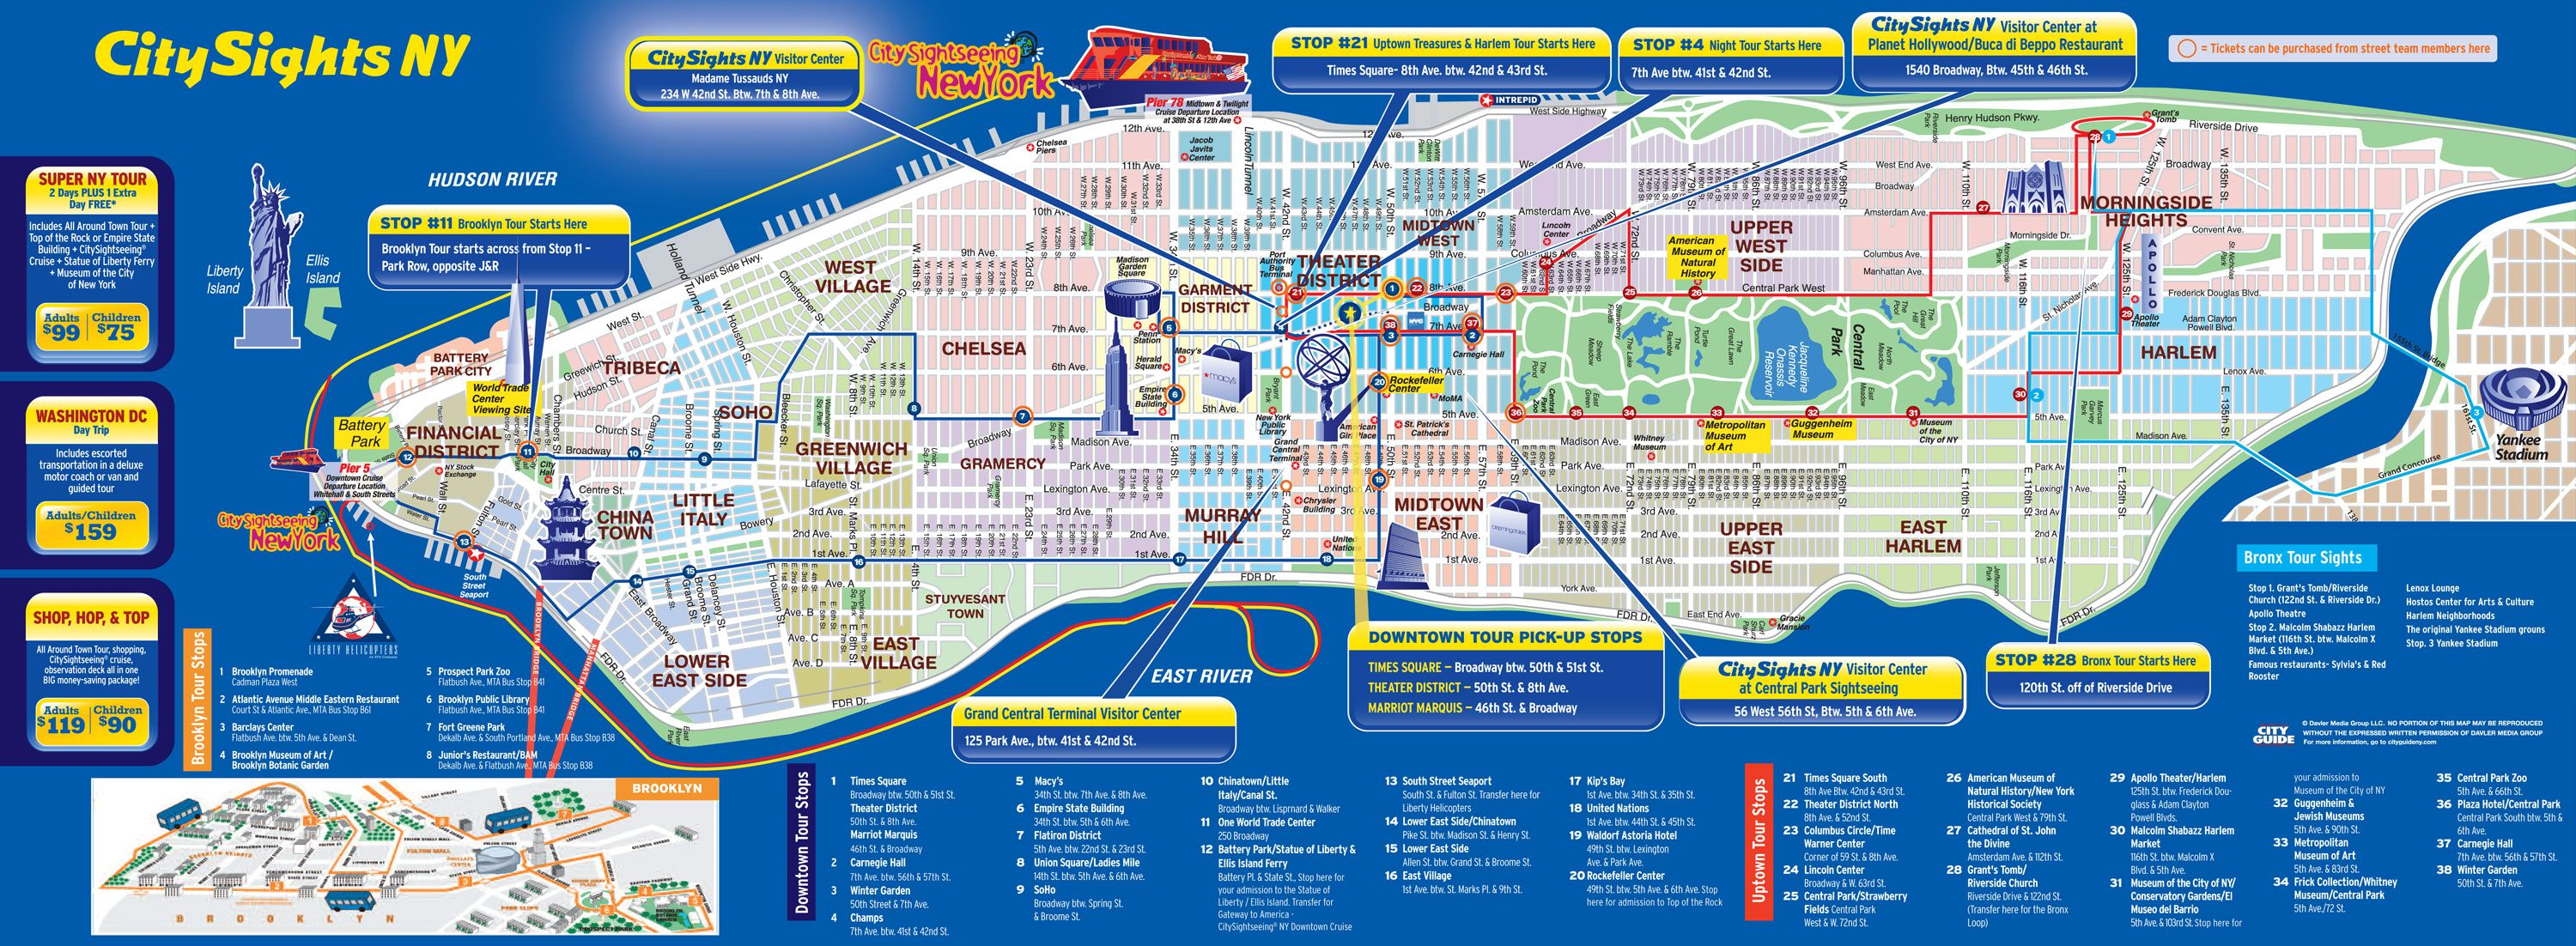 Hop On Hop Off Nyc Map Map of New York City hop on hop off bus tour with City Sights NY